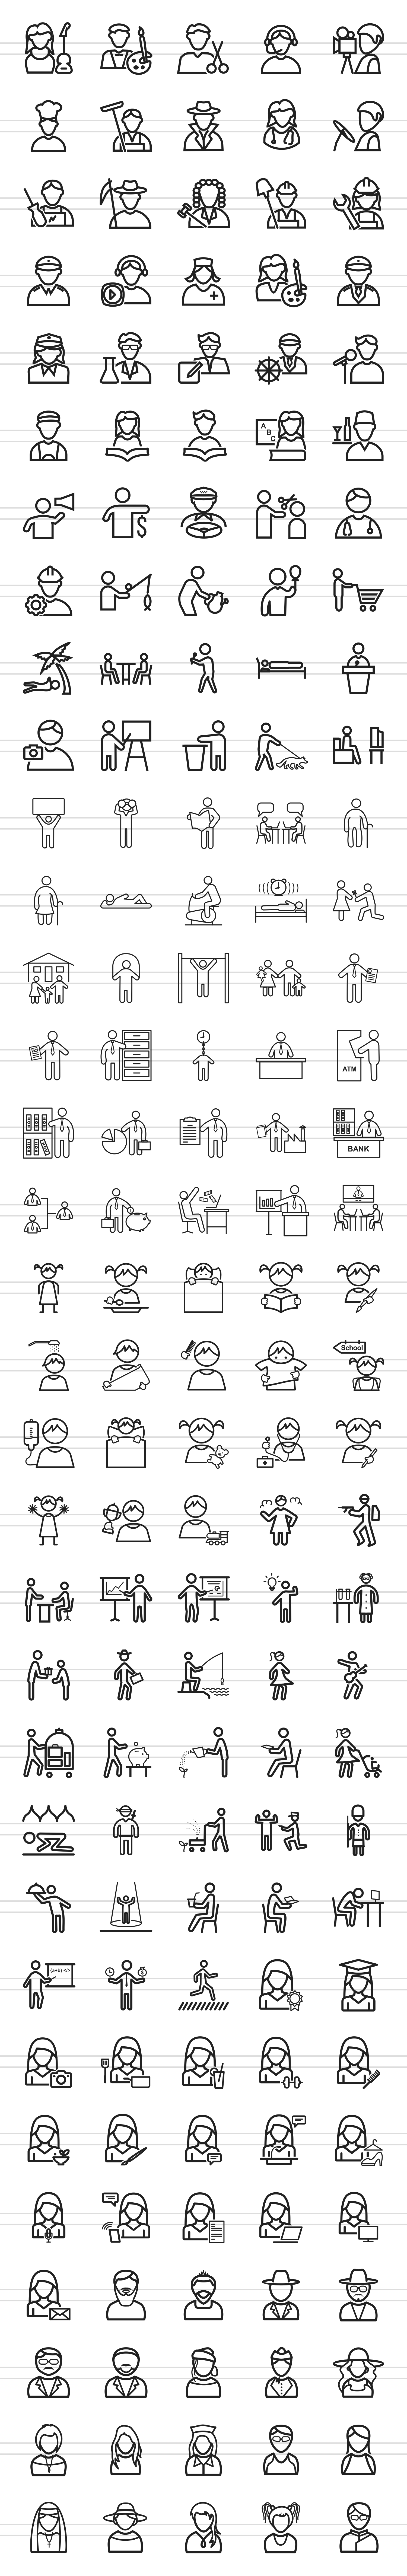 166 People Line Icons example image 2